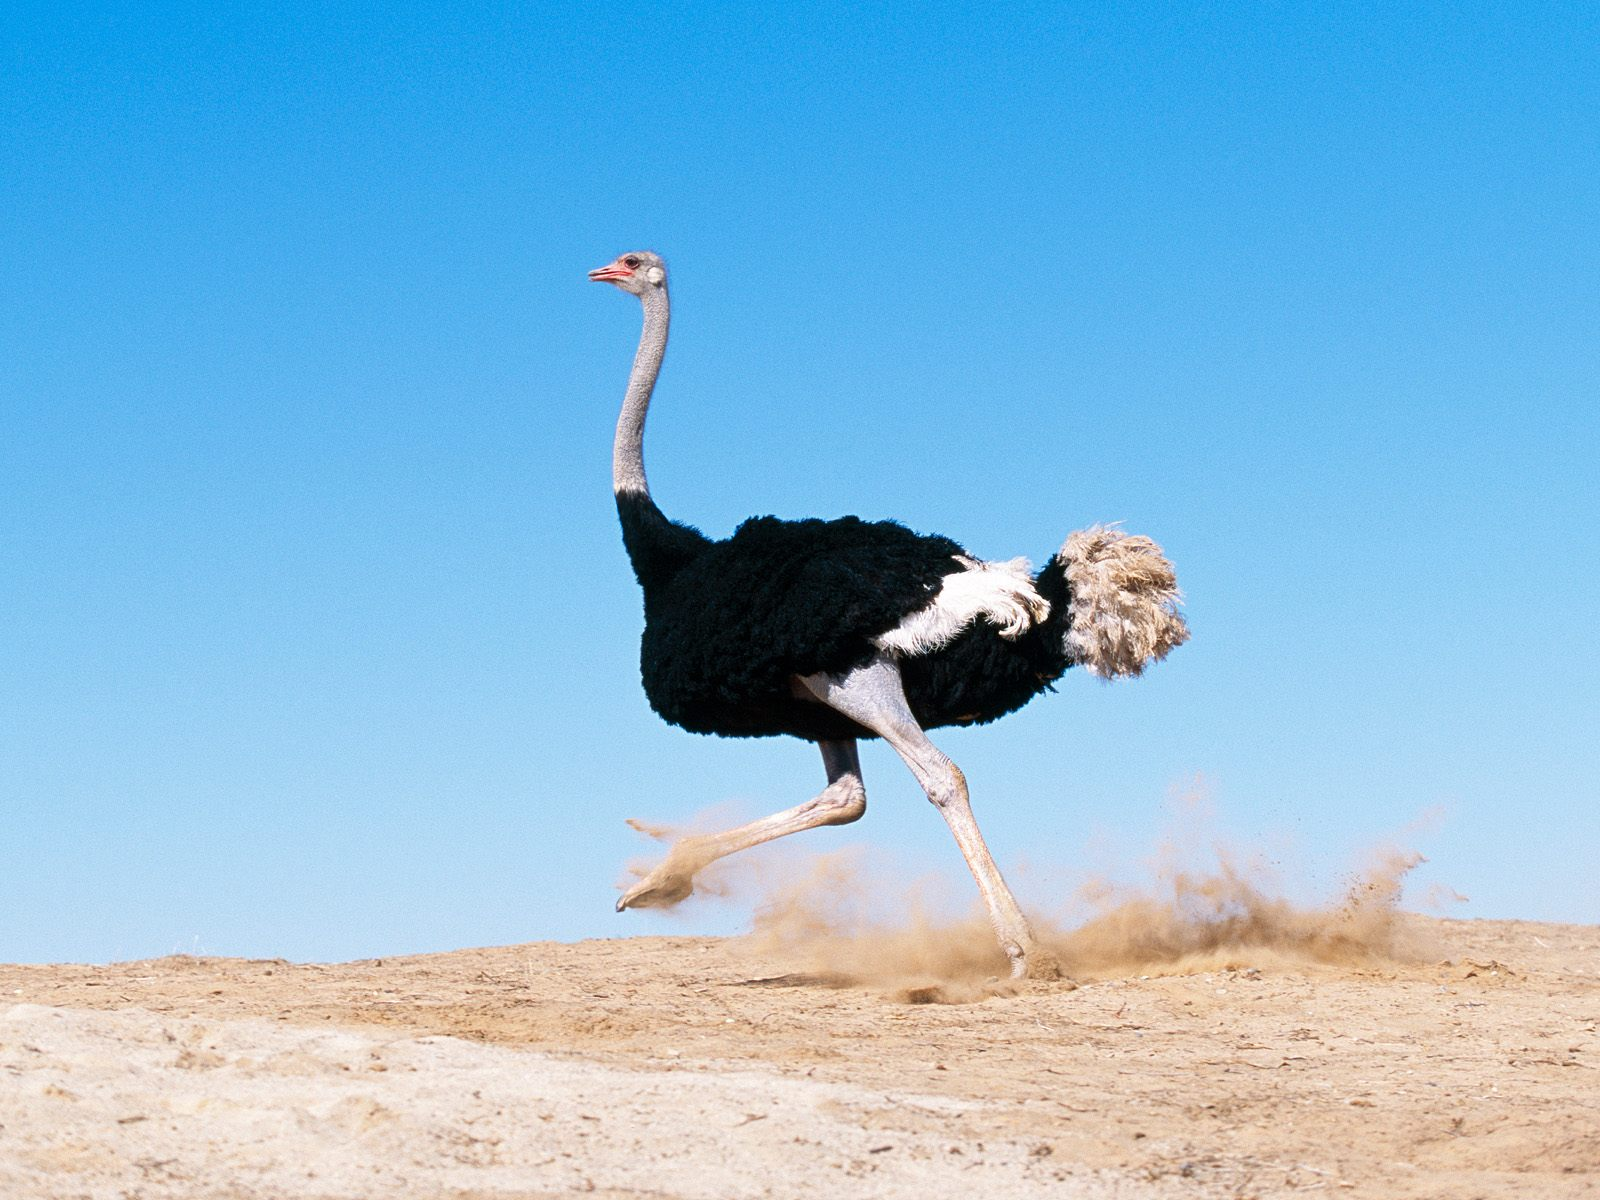 ?image=Hayvanlar/I'm_Late_Black_Feathered_Ostrich.jpg